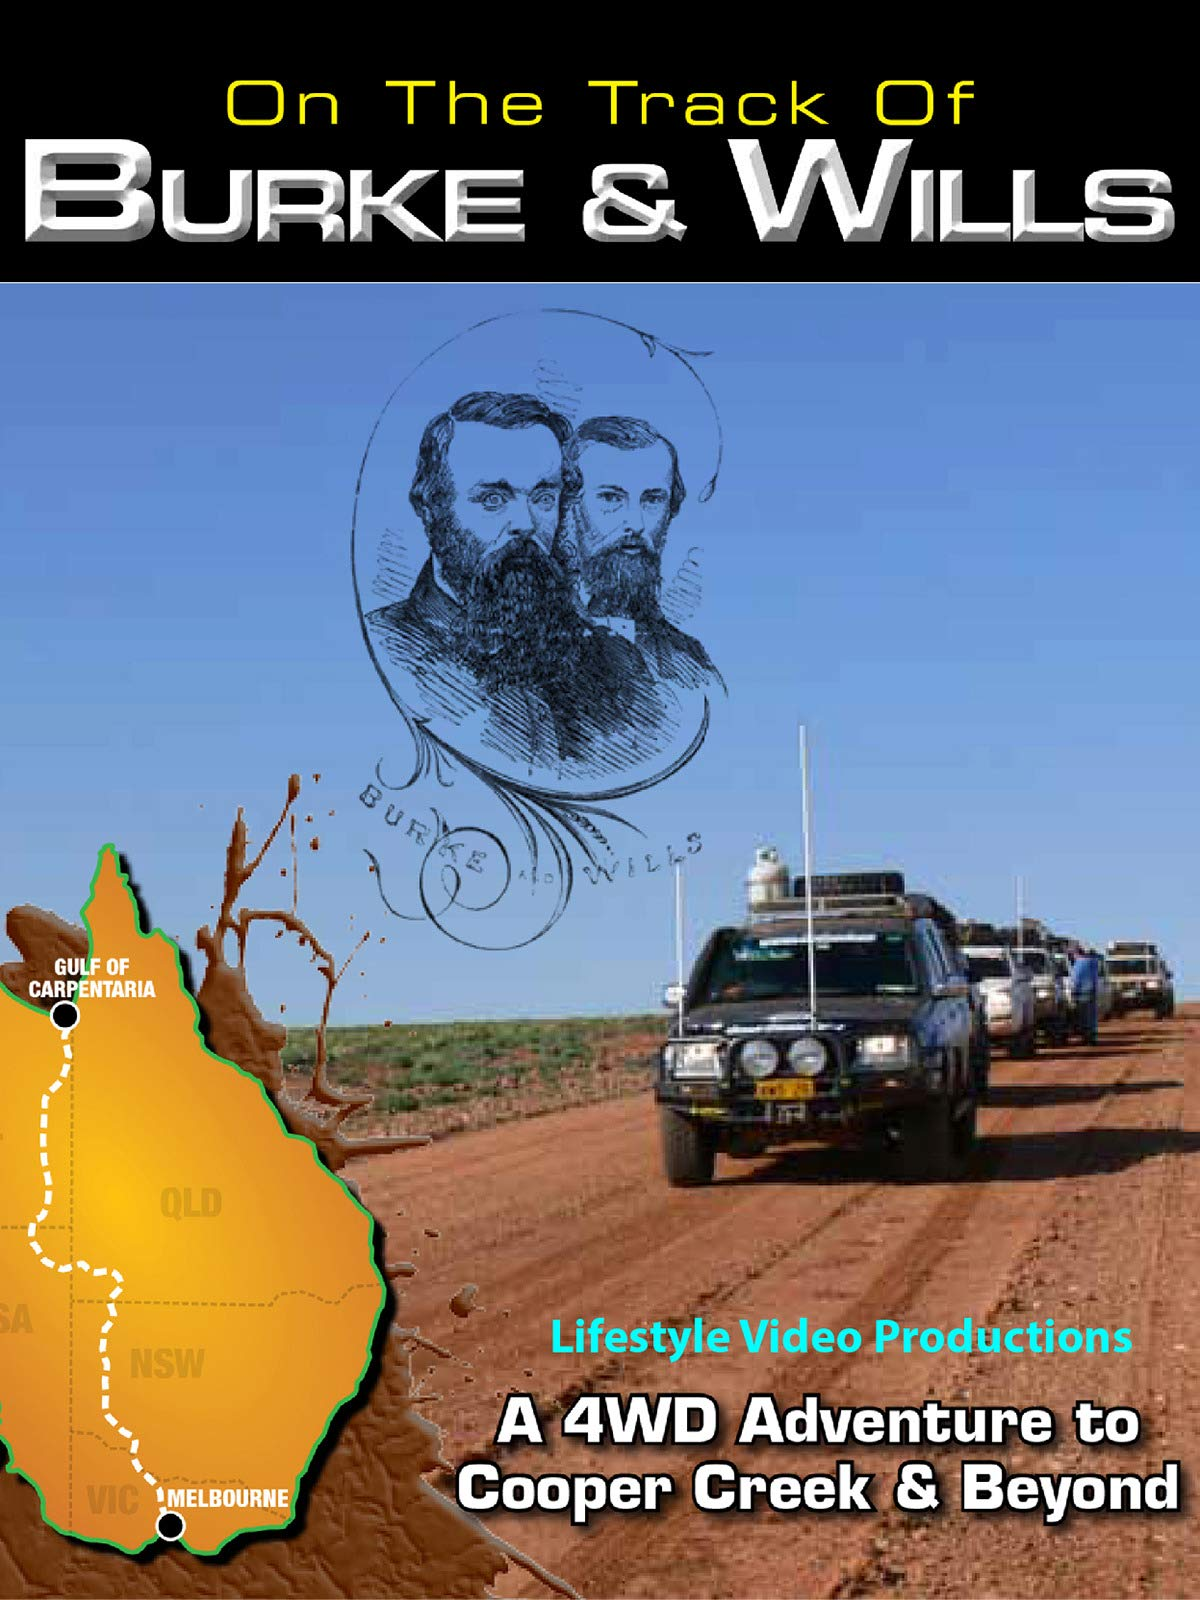 On the Track of Burke and Wills